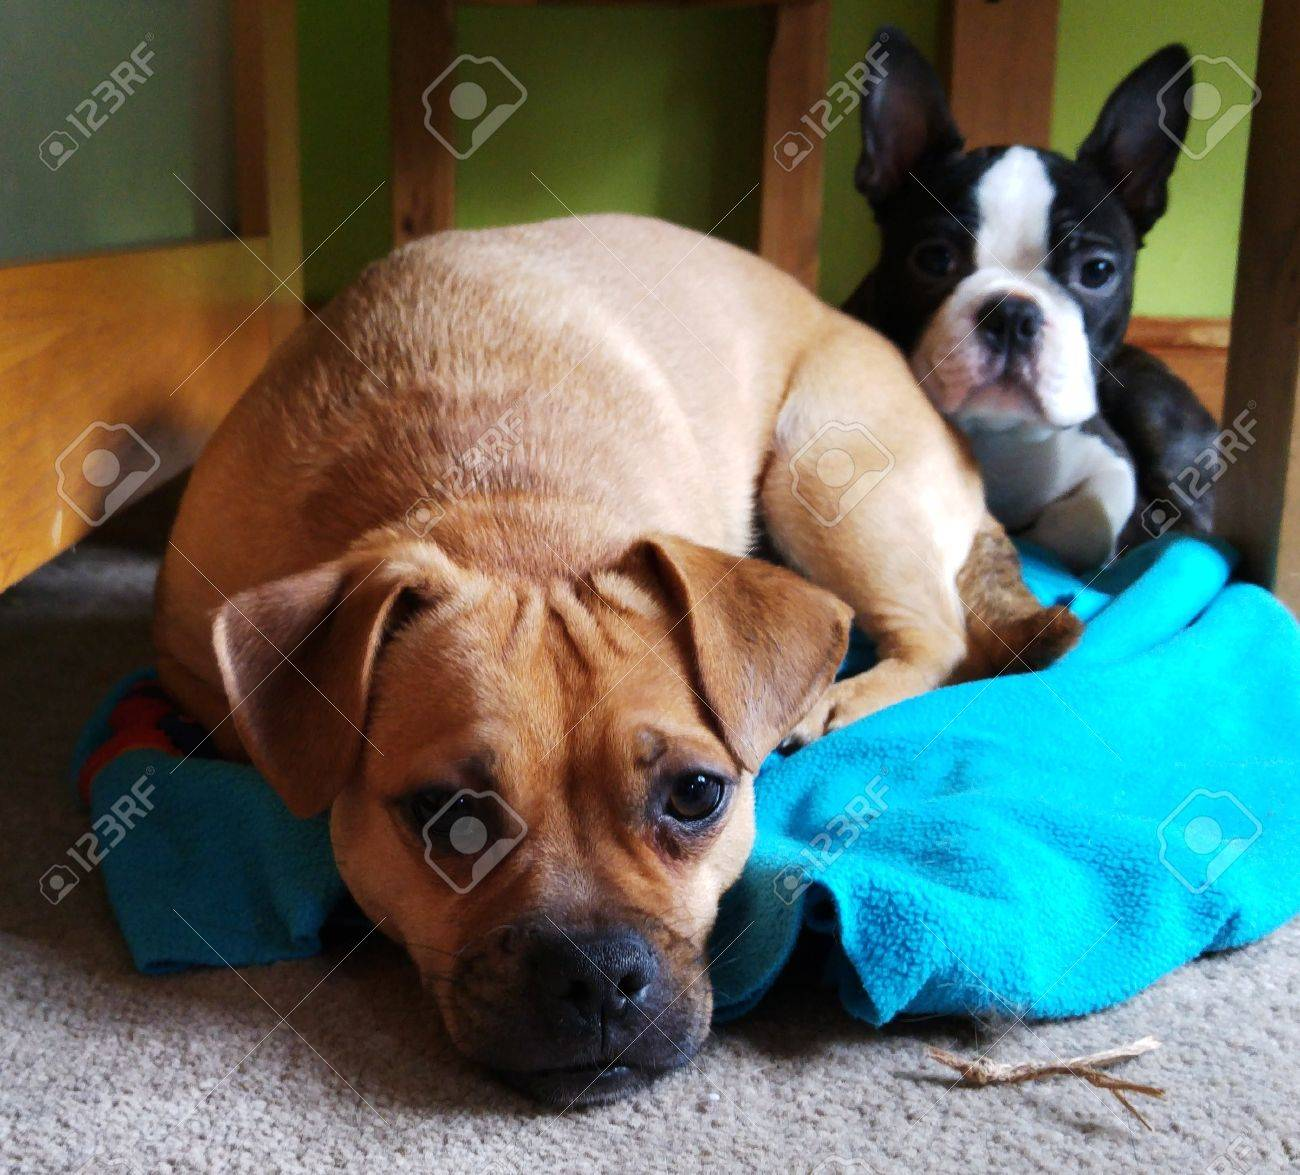 Boston Terrier And Jack Russell Pug Cross Puppies Stock Photo